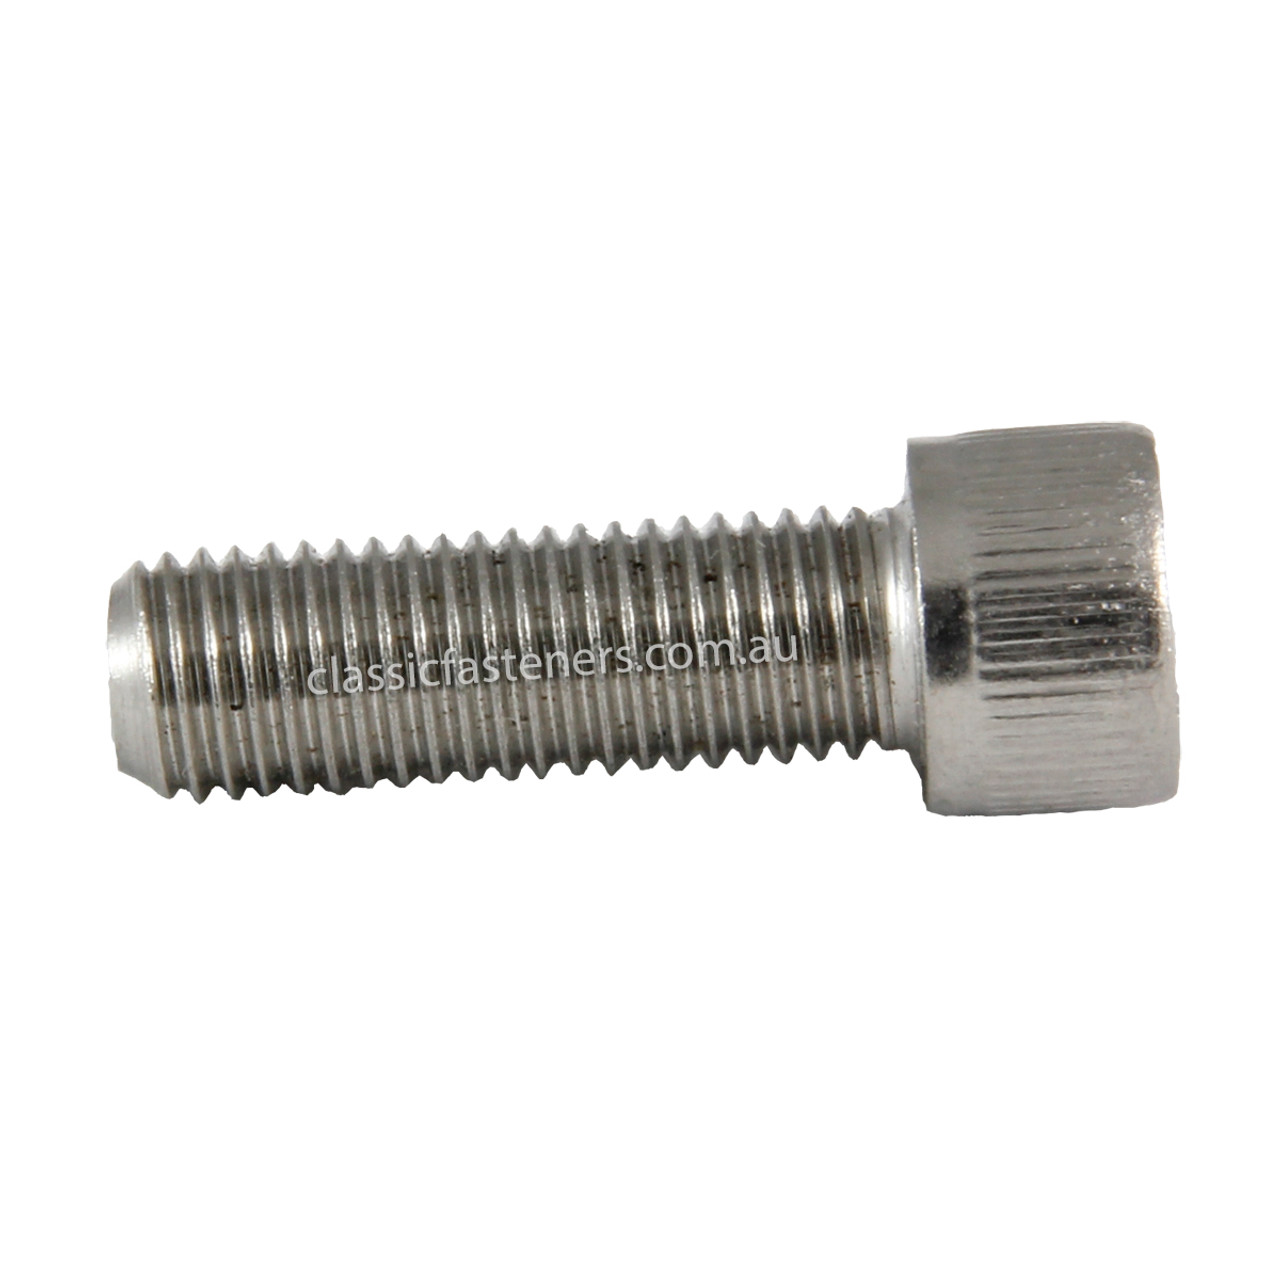 Pack of 50 x 1//4 UNC A2 Stainless Dome Cover Nuts